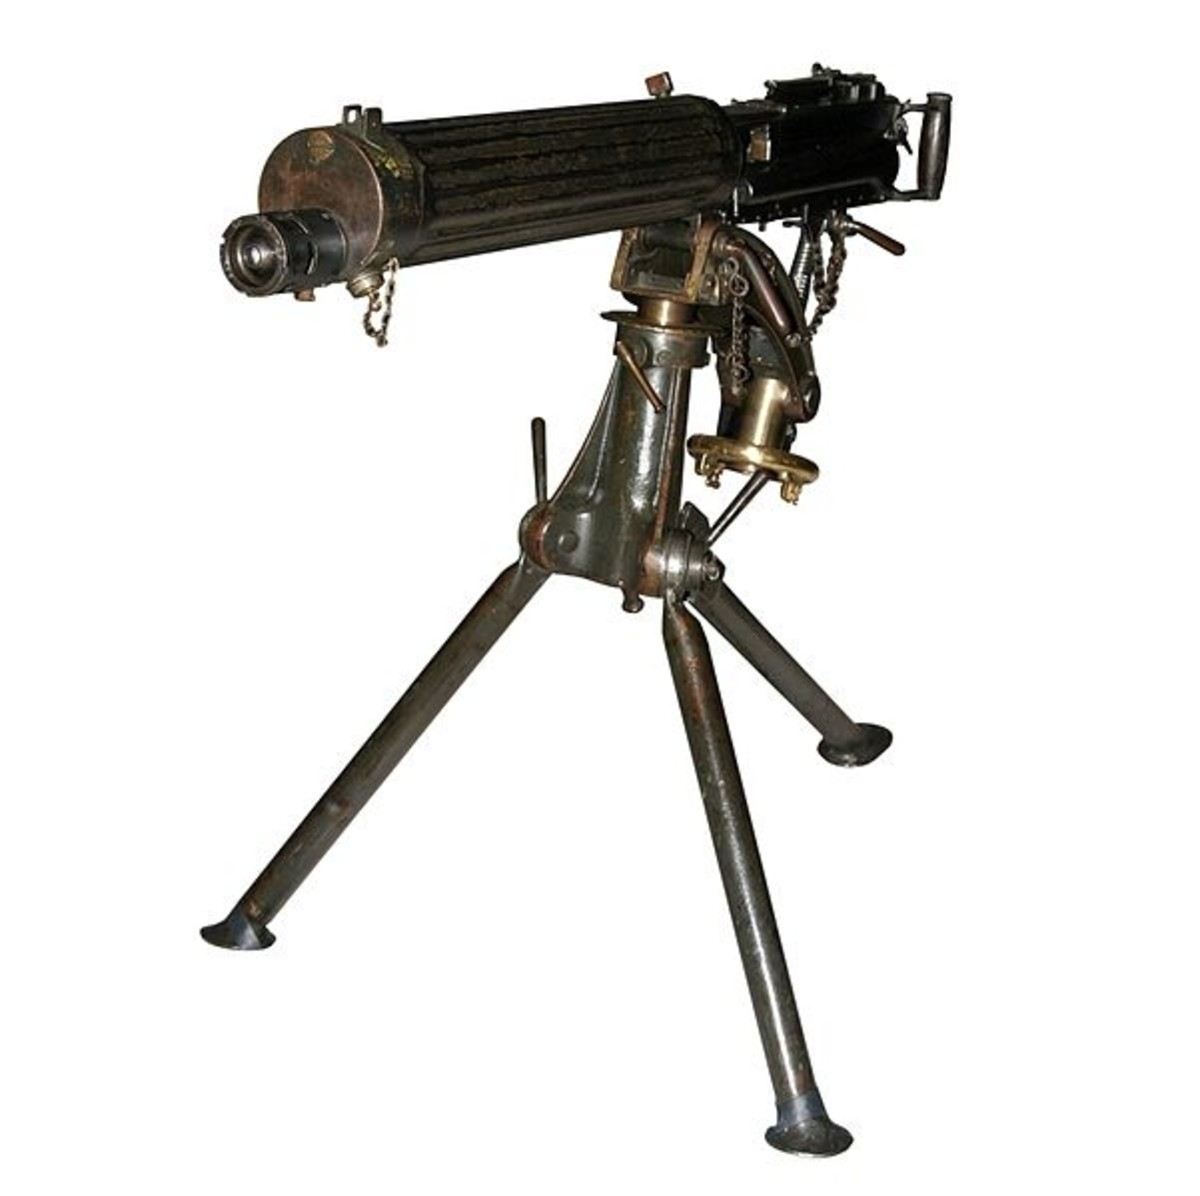 World War Two (WWII) Vickers machine-gun.